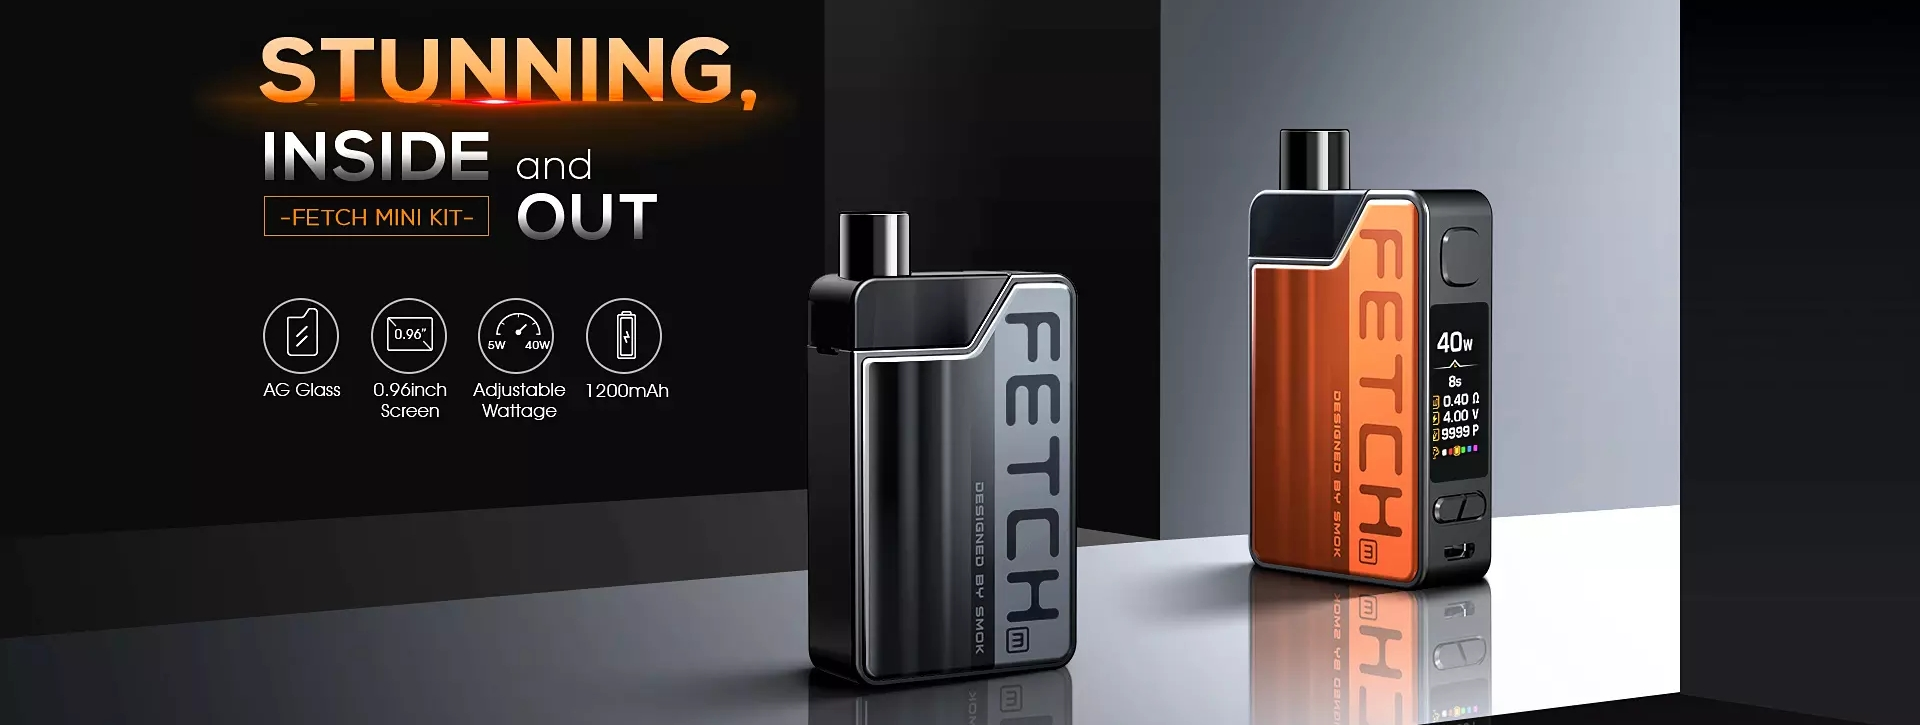 04 Smok Fetch Mini